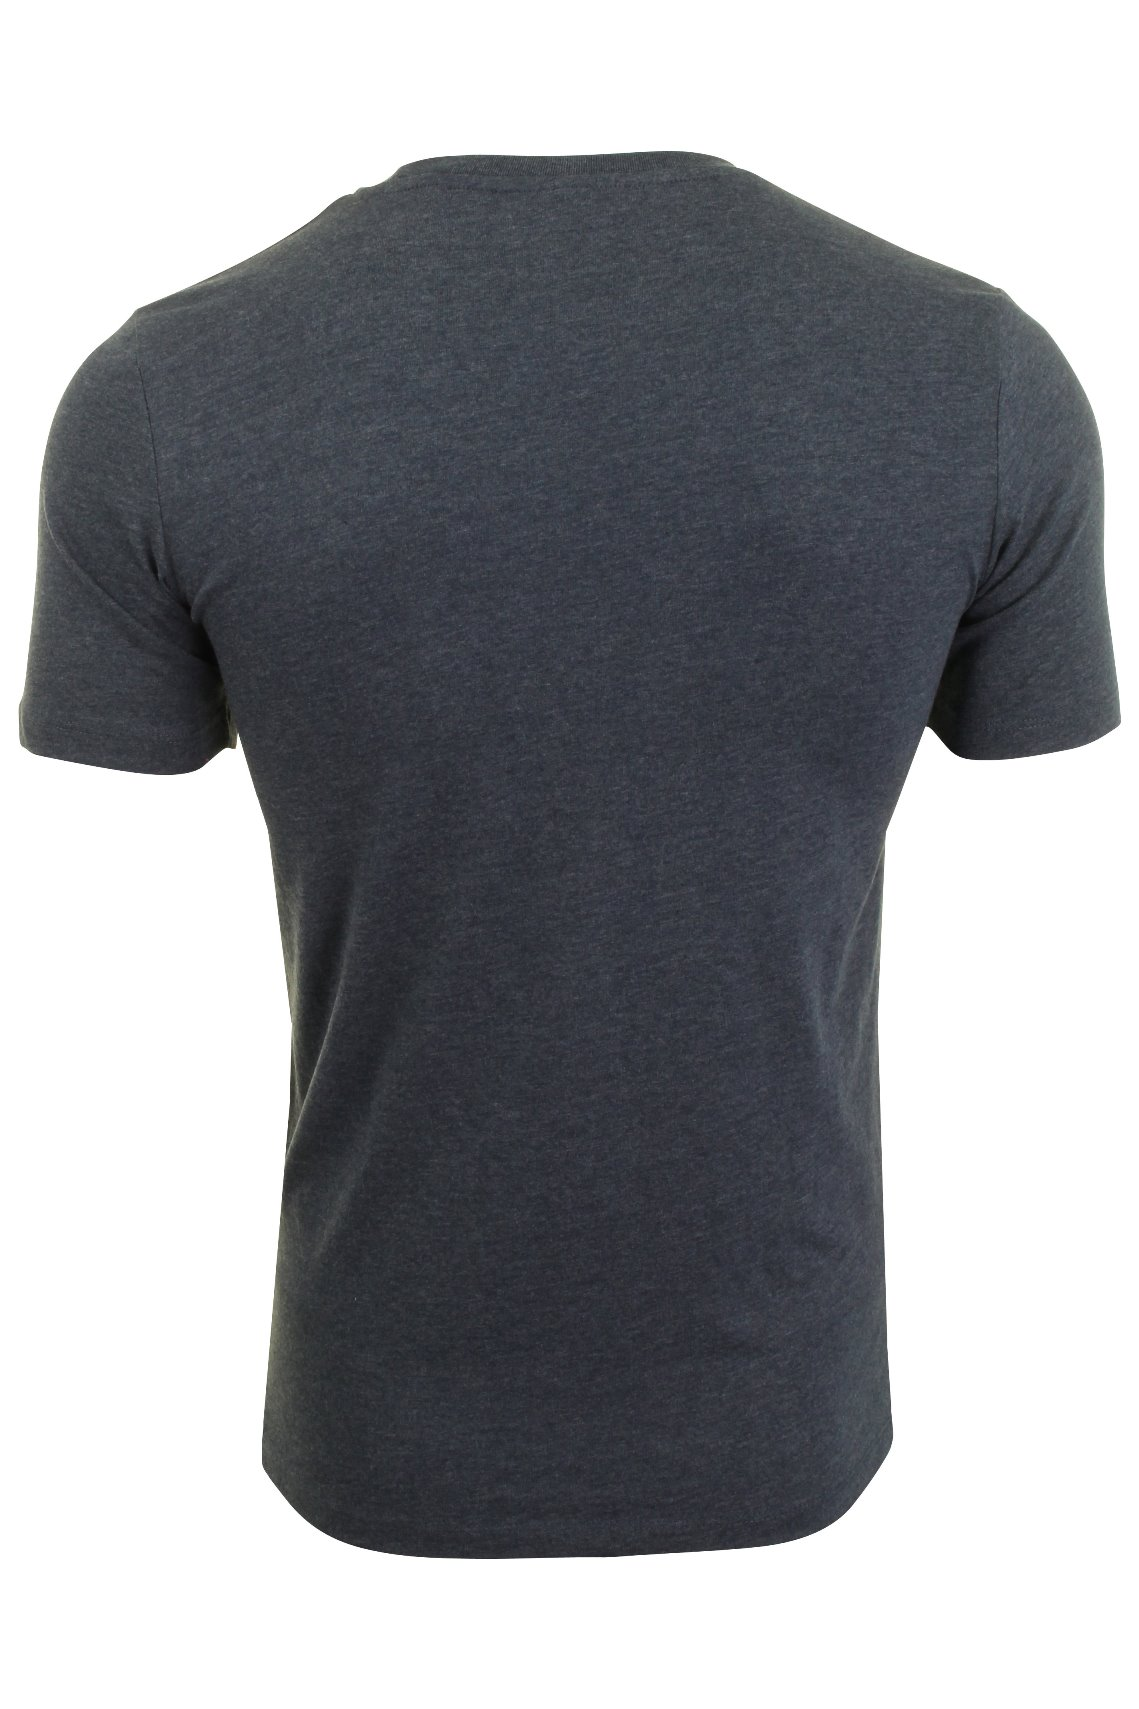 Jack-amp-Jones-Mens-Short-Sleeved-T-Shirt-039-JJEJEANS-039 thumbnail 17